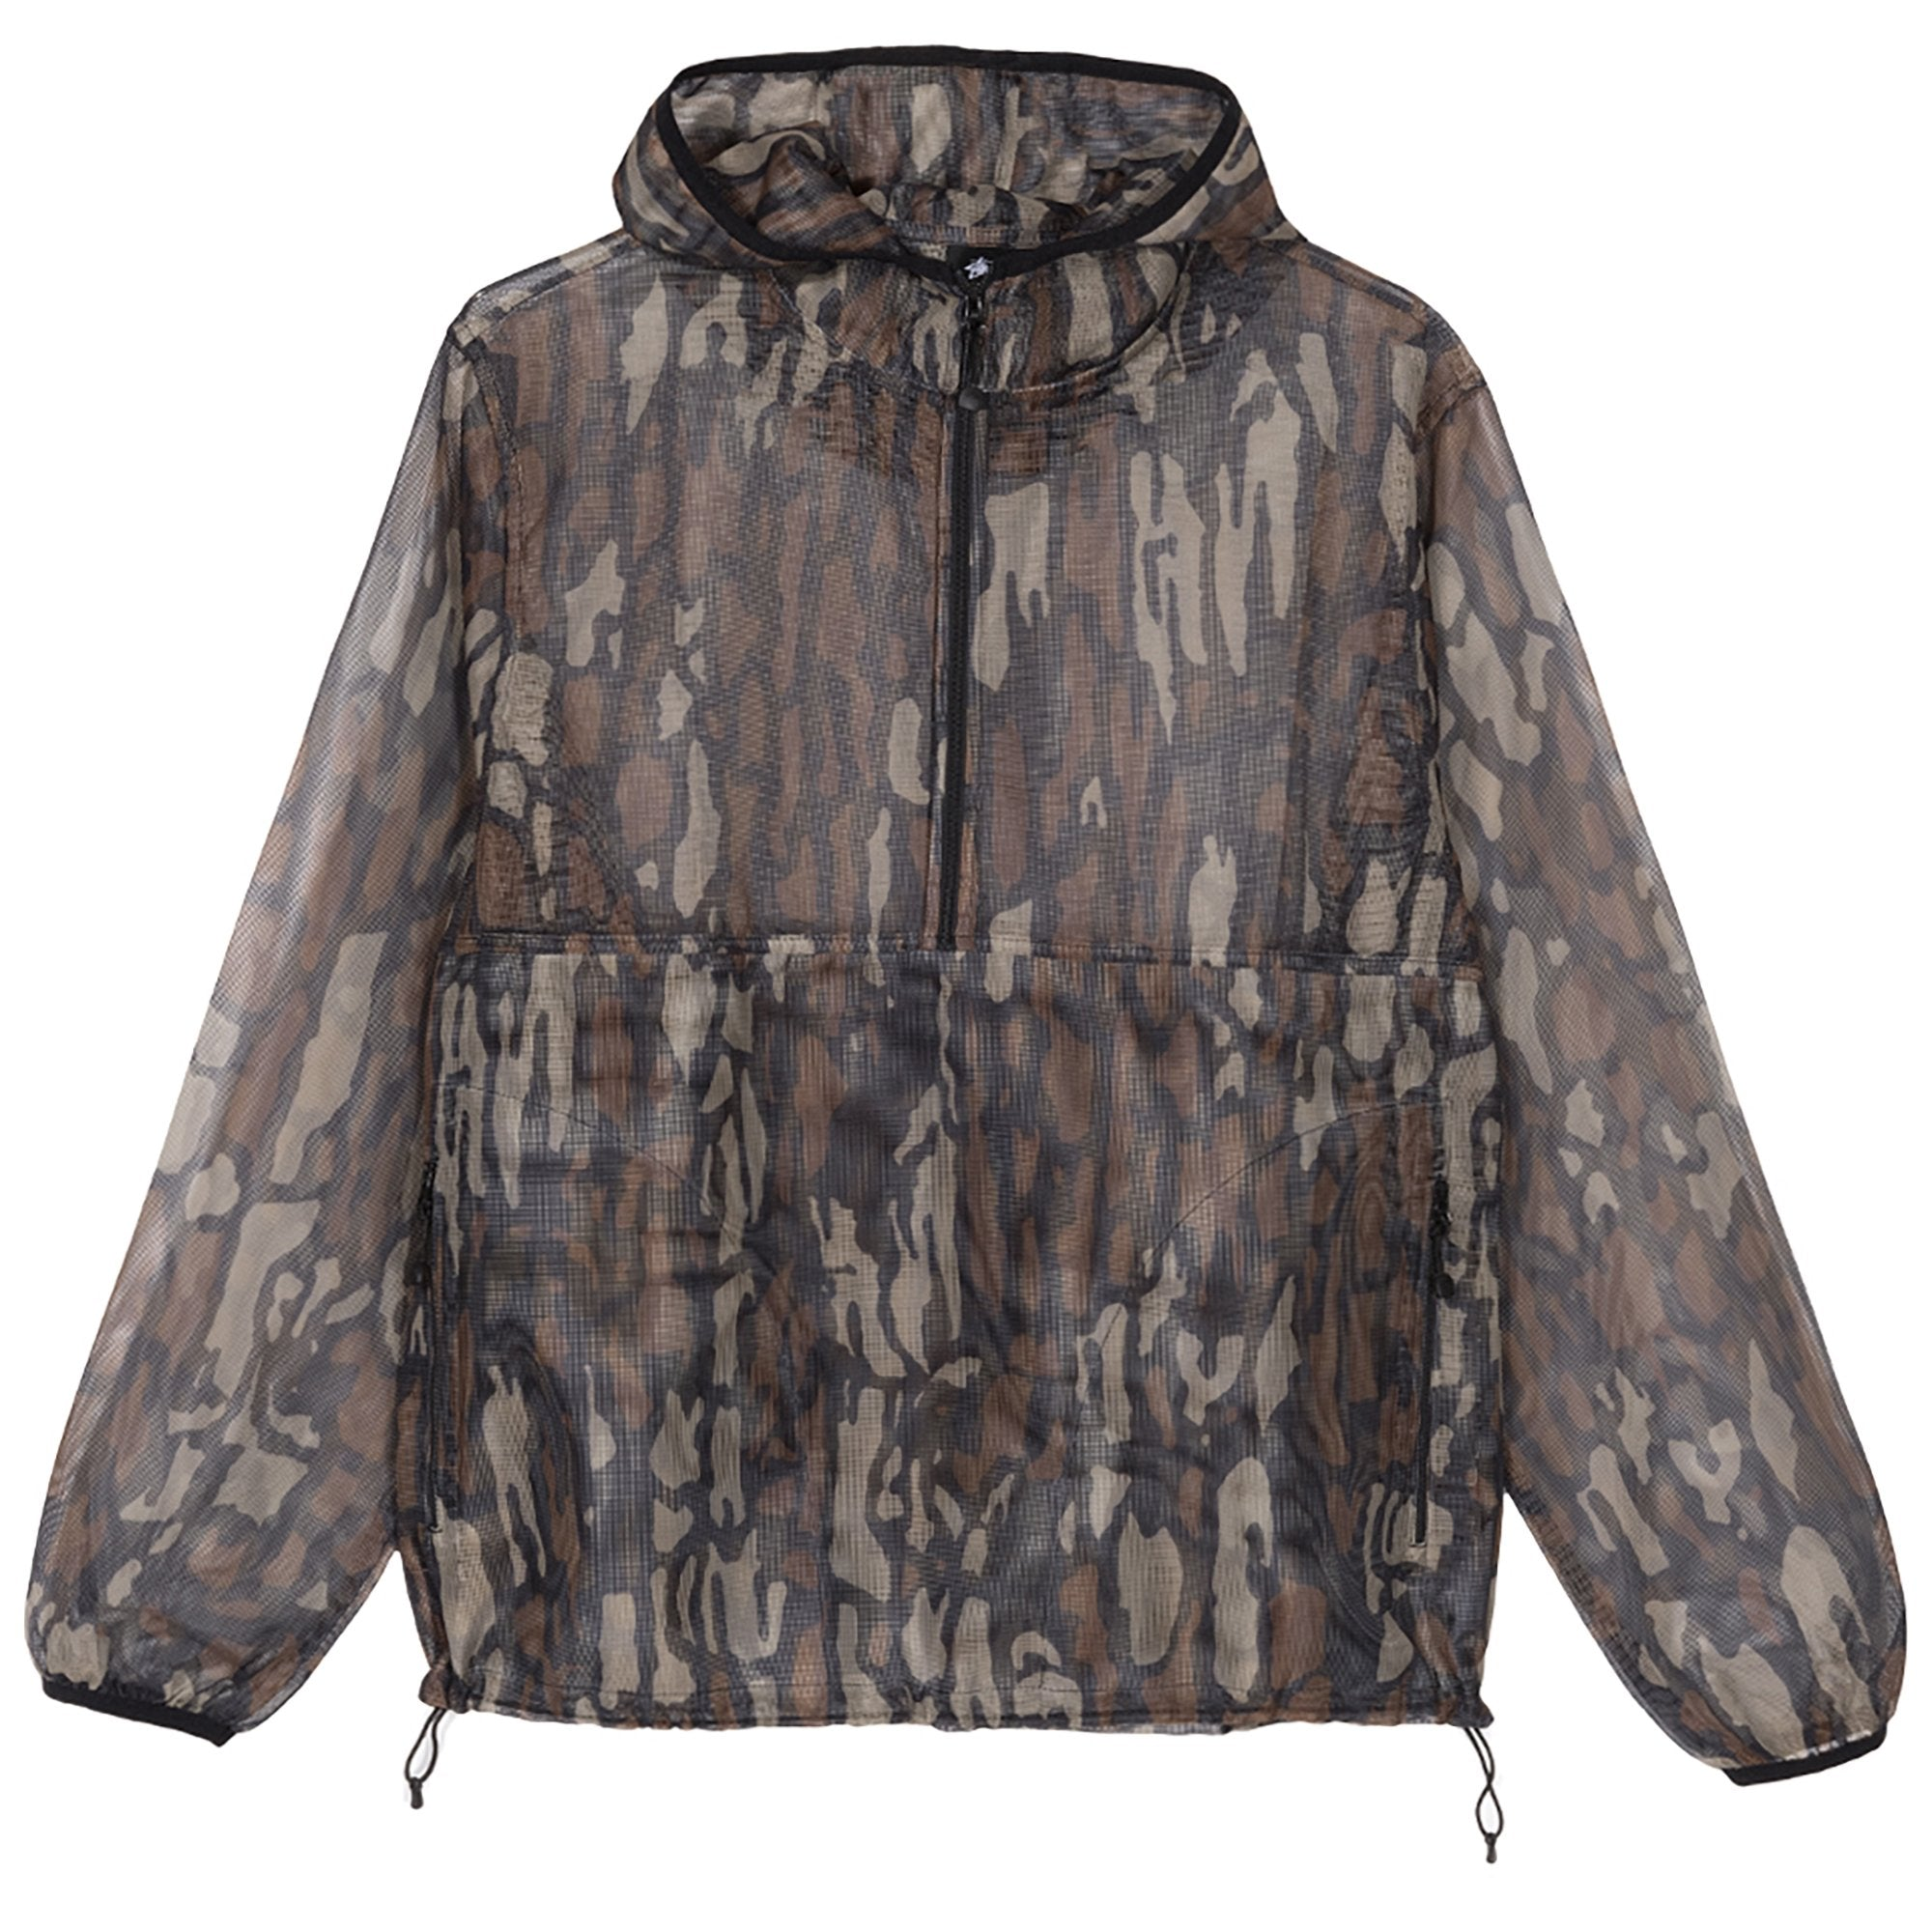 9f2c552d0 Men's Jackets, Vests and Outerwear by Stussy – Stussy.com